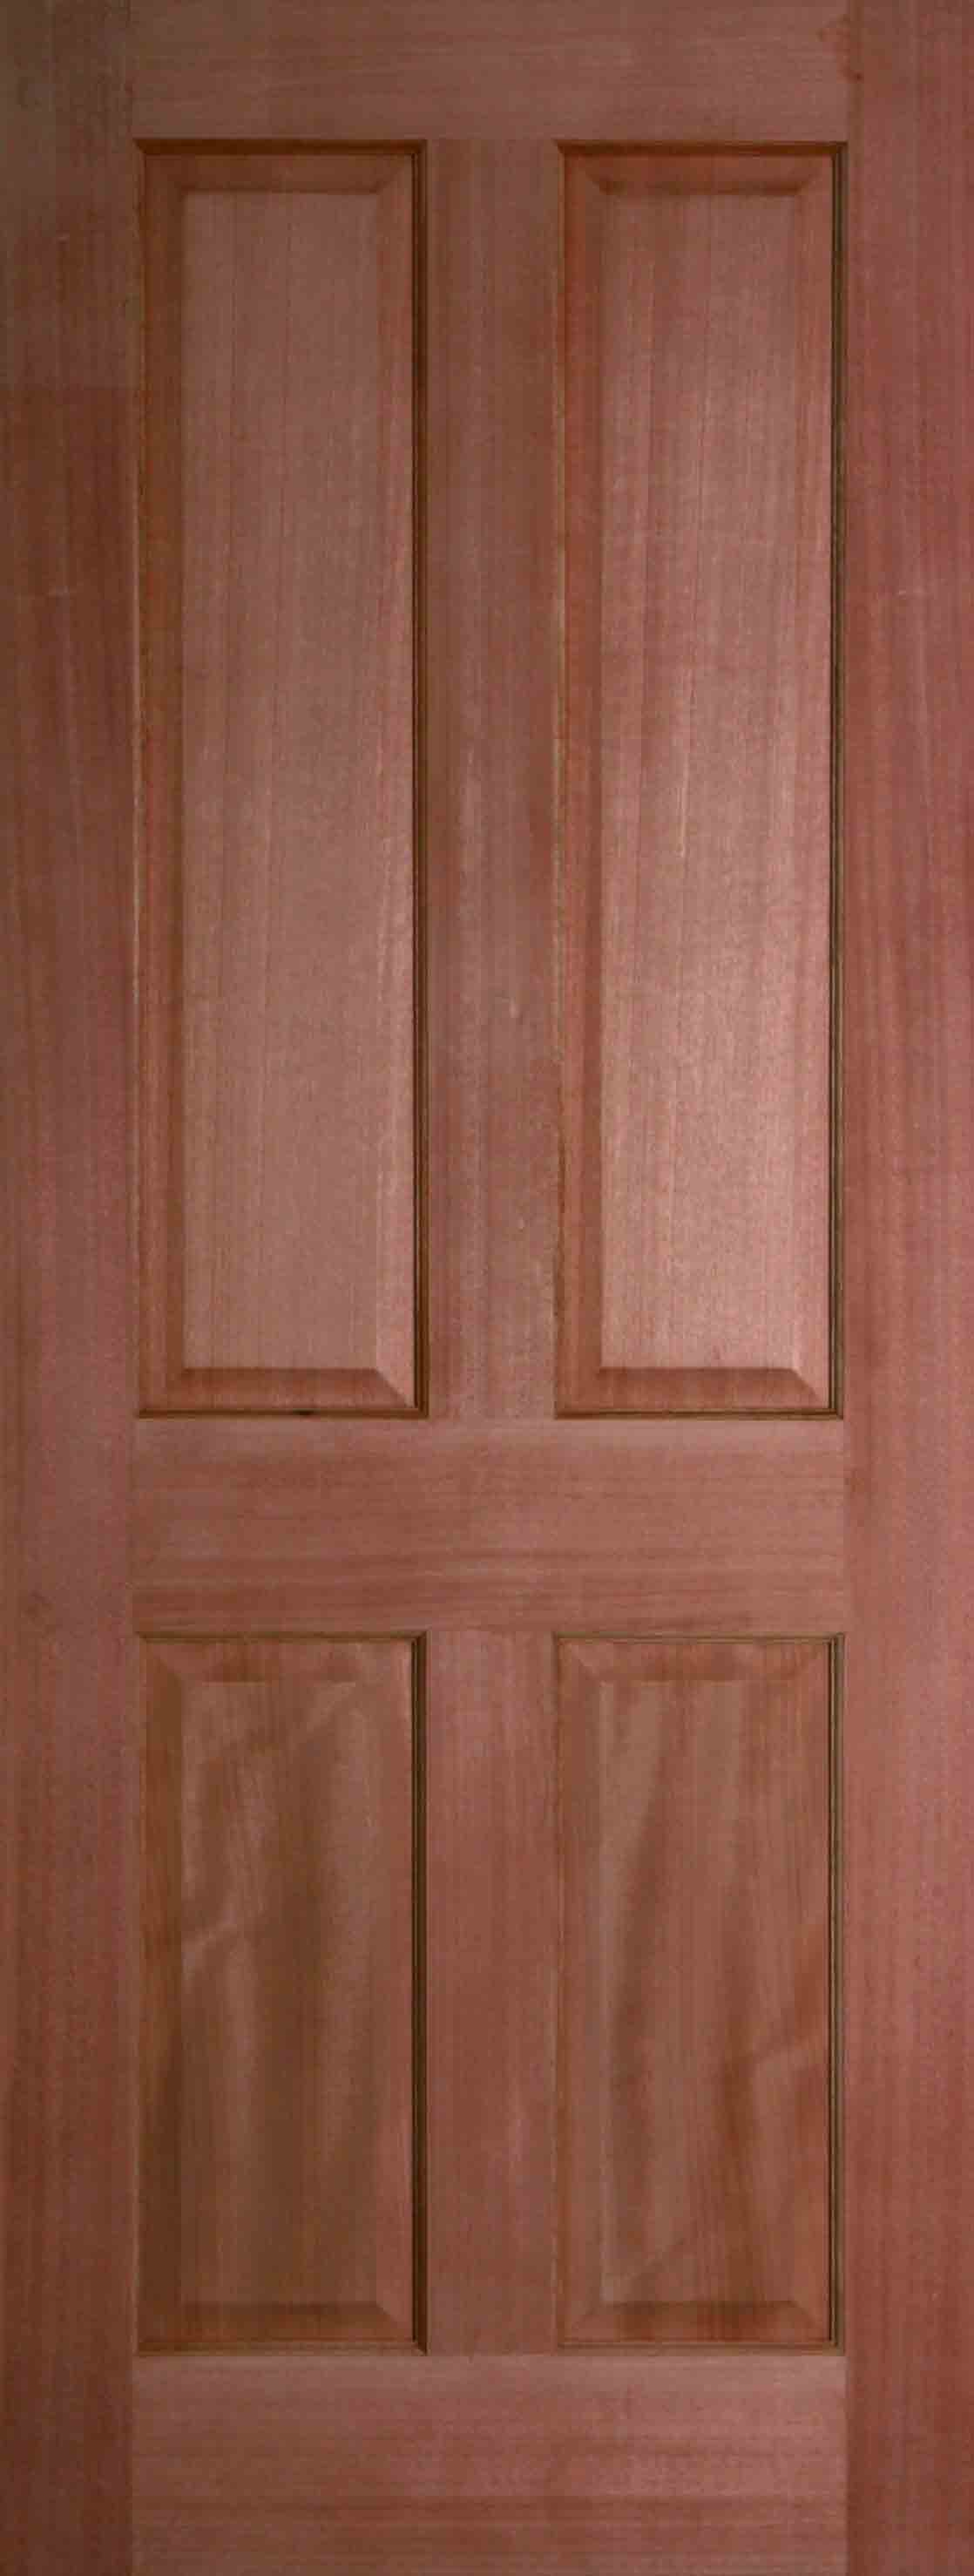 Finewood doors mosque fine wood carved doors sc 1 st for Wood carving doors hd images